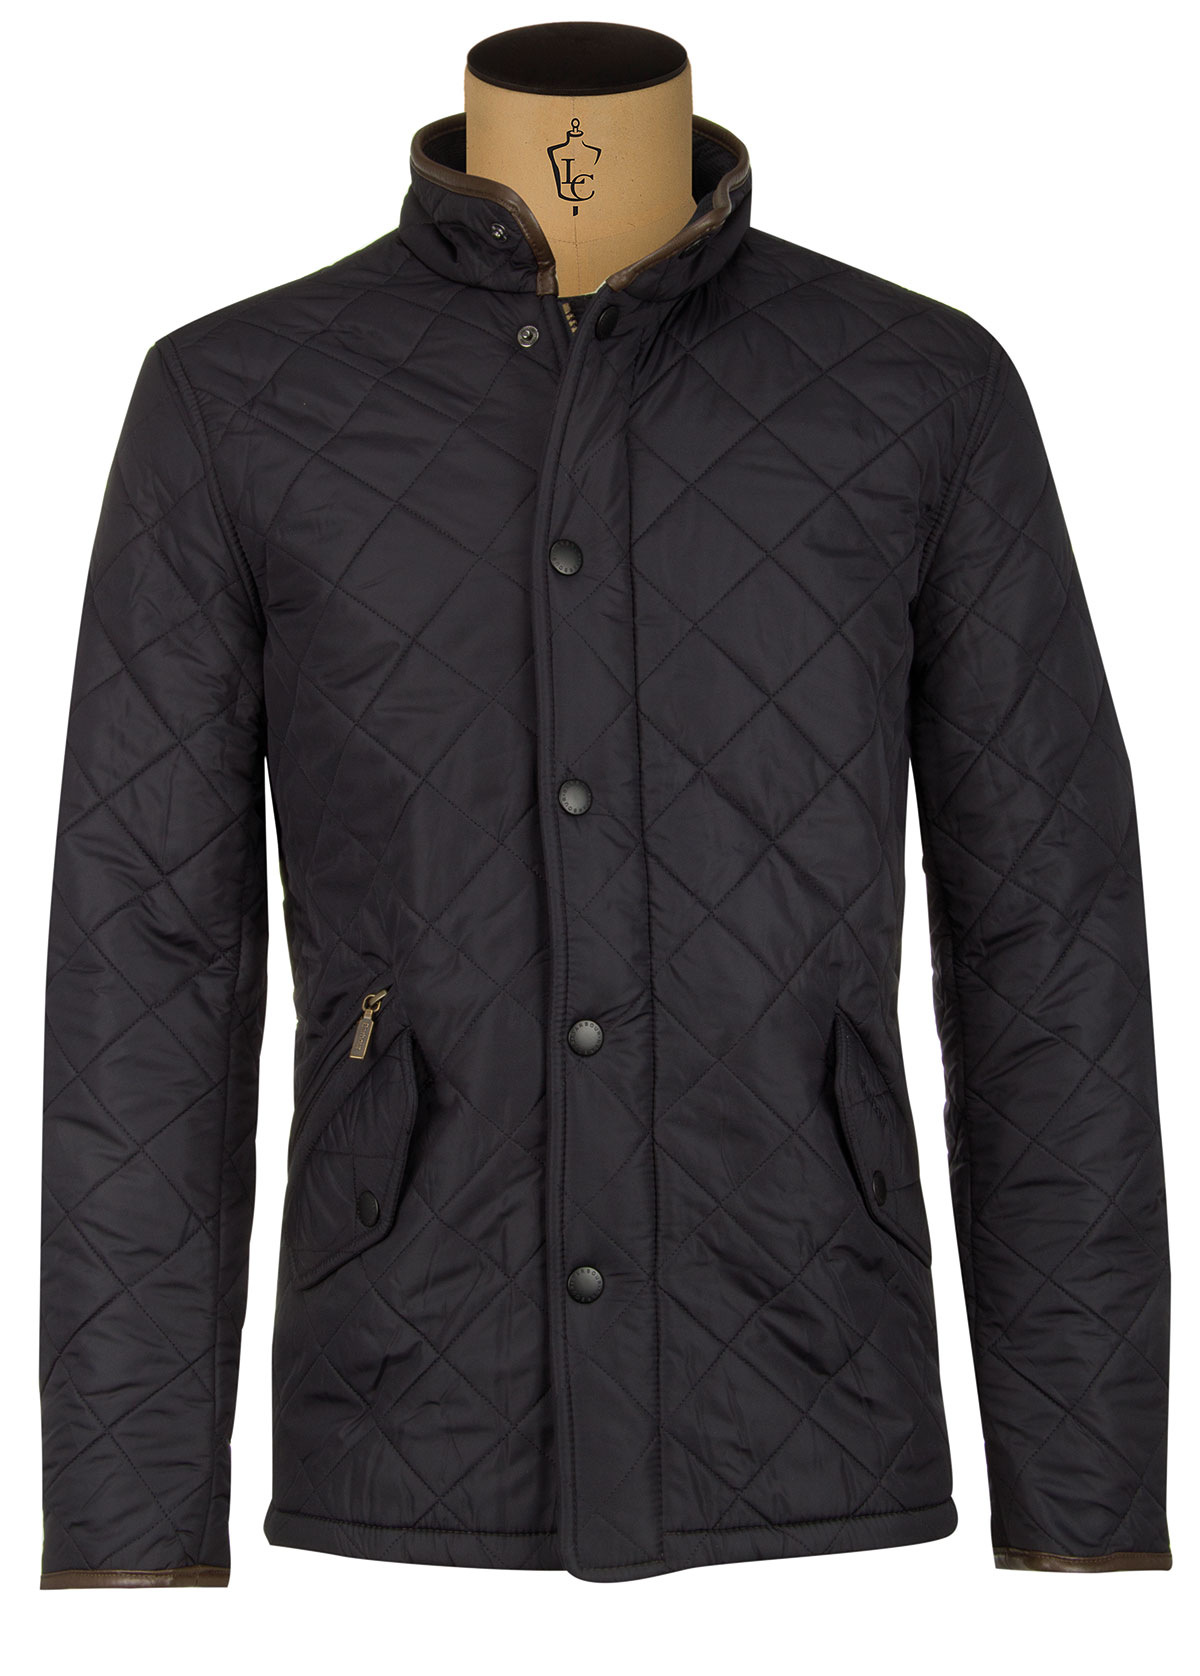 Barbour Quilted Jacket €199 at Louis Copeland – Something a little more All-Purpose